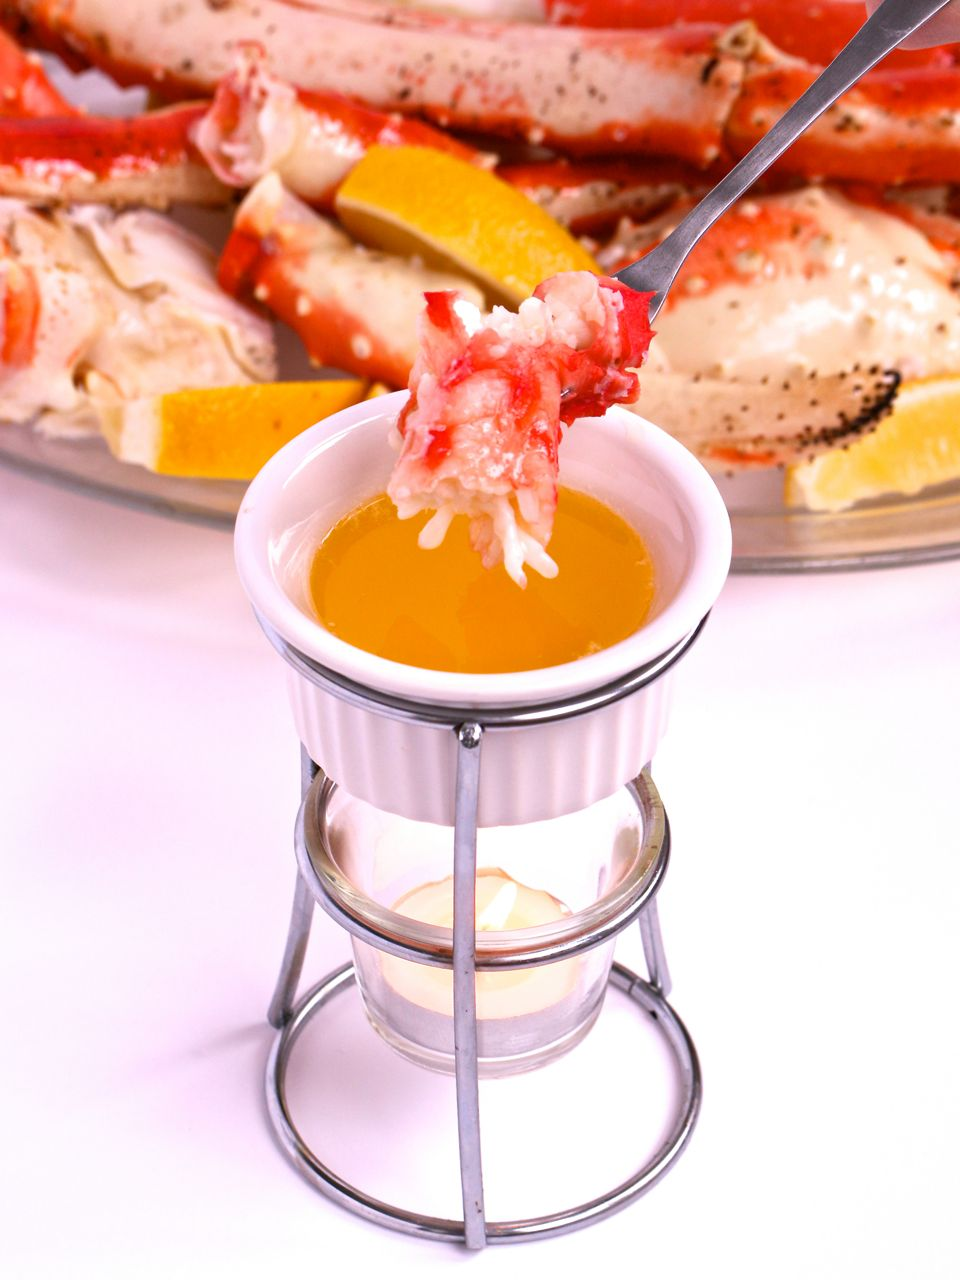 King Crab Legs Drawn in Butter | New Year's Eve Dinner Recipes To Kick Off 2020 In Style